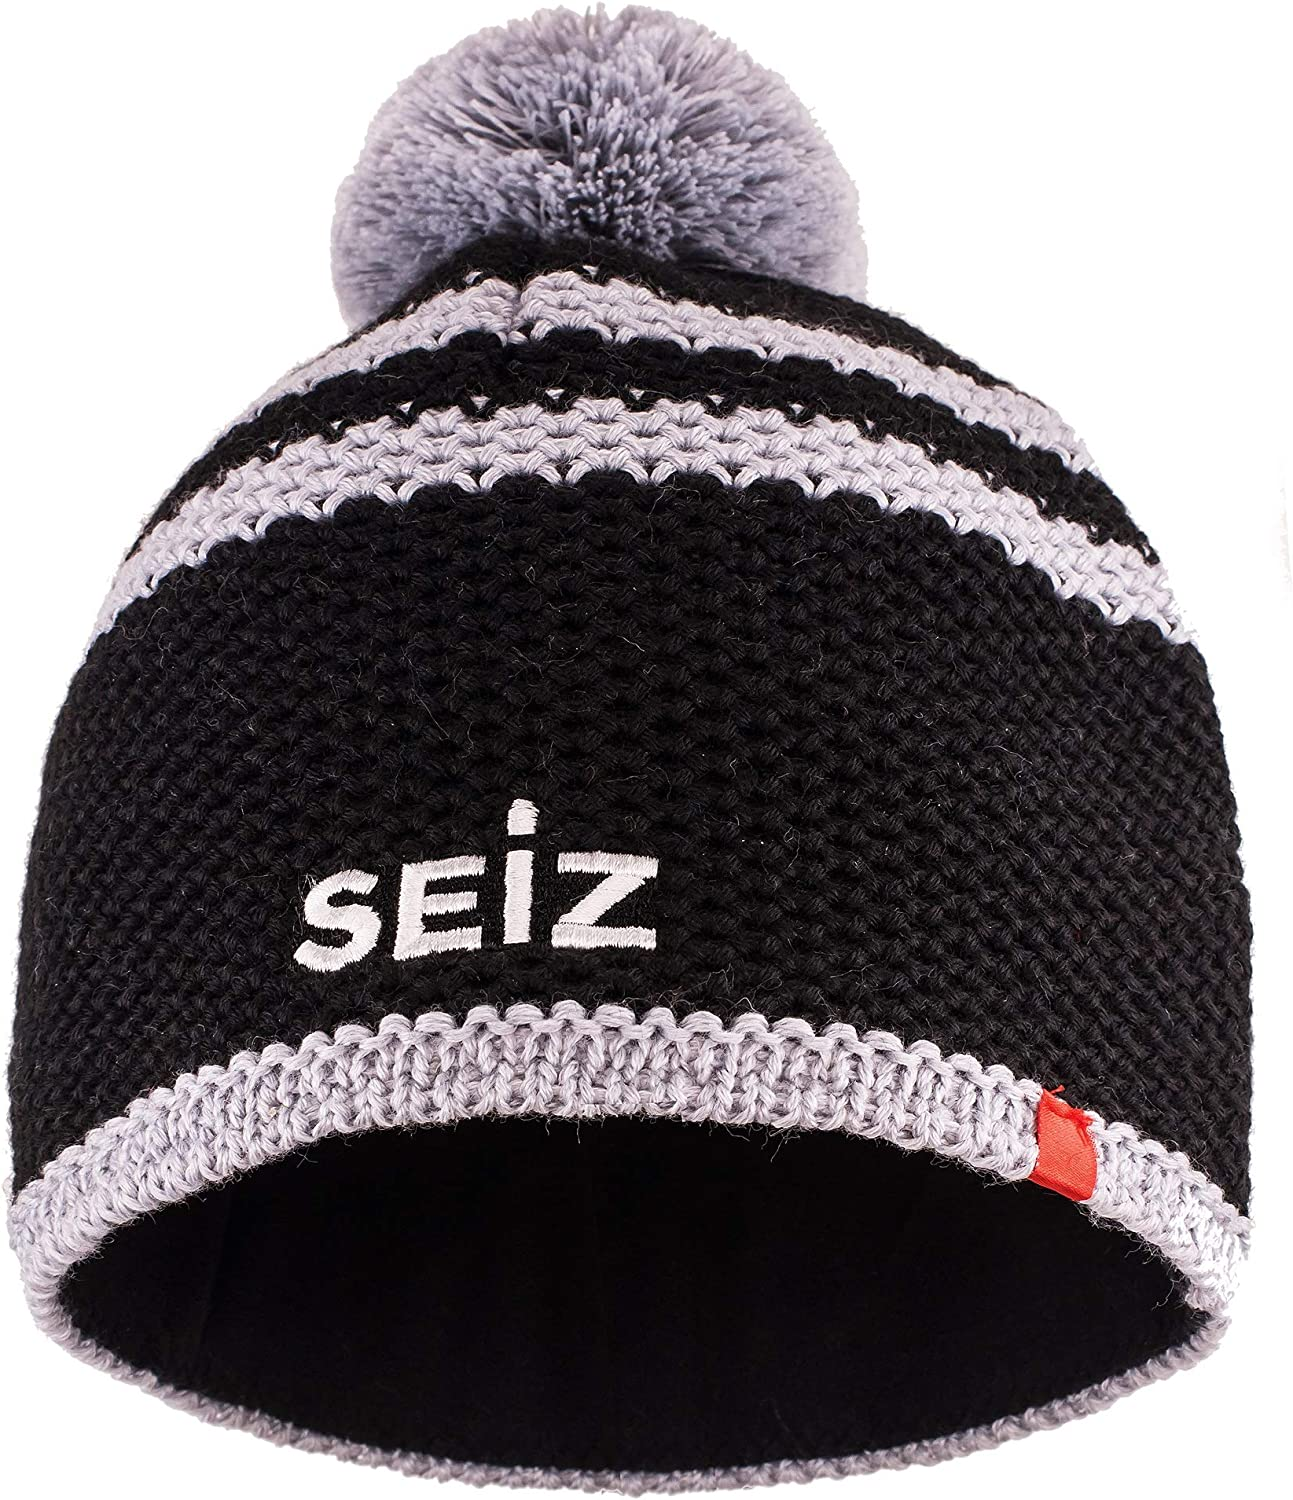 SEiZ Unisex Adults Knitted Hat Sw//Gr